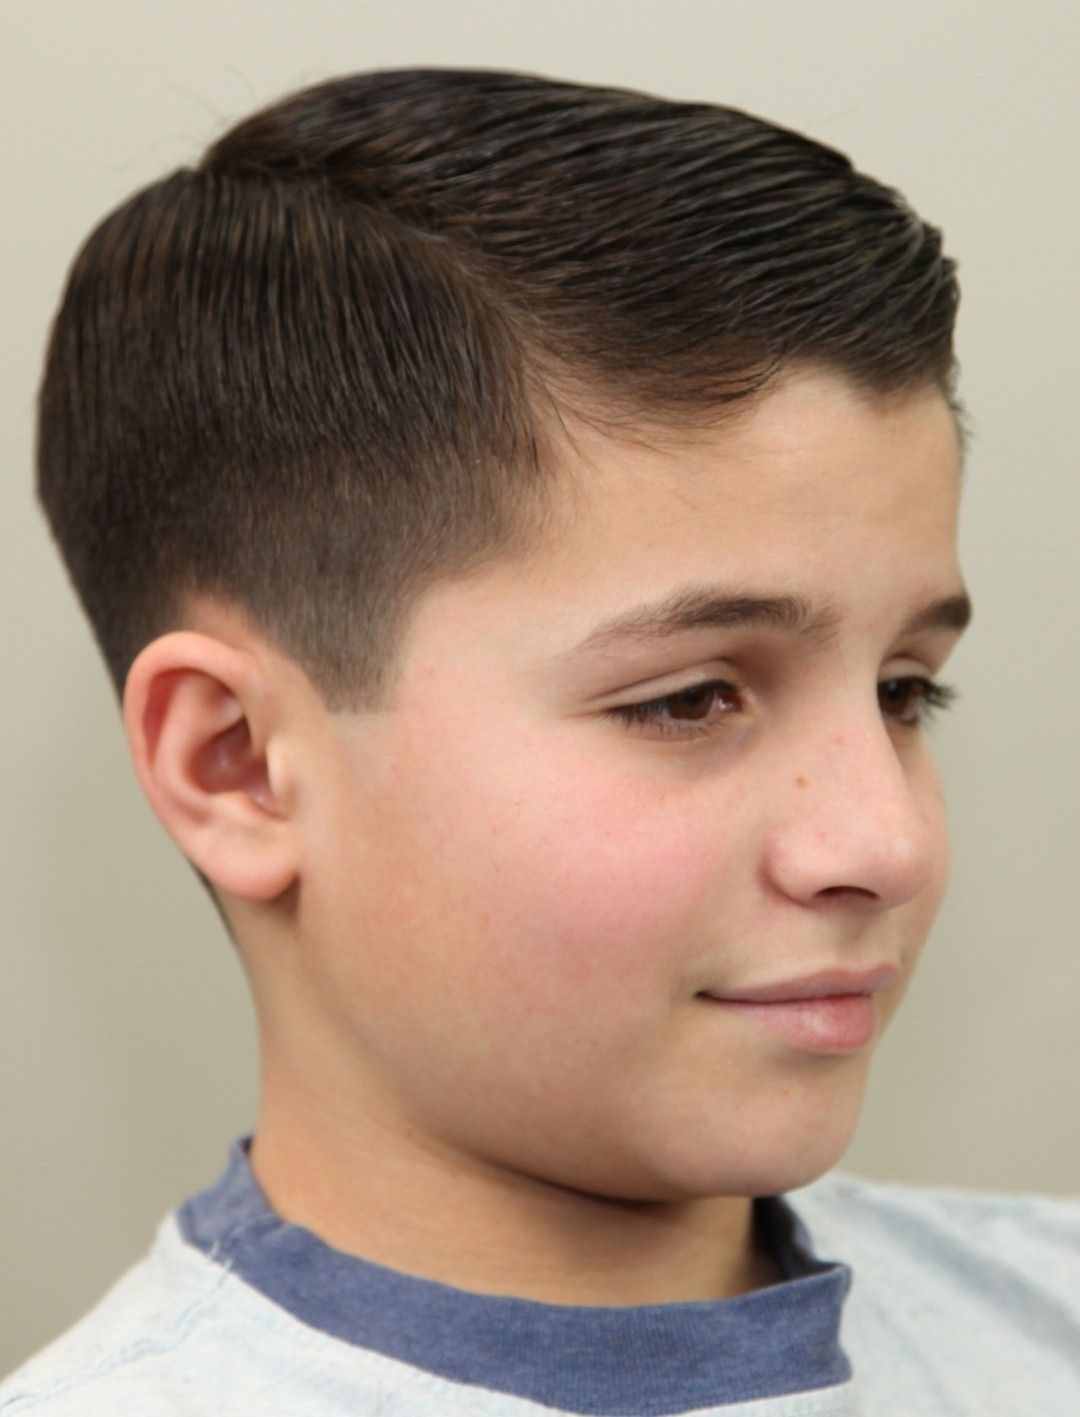 Magnificent 1000 Images About Boy Haircuts On Pinterest Boys Combover And Short Hairstyles For Black Women Fulllsitofus